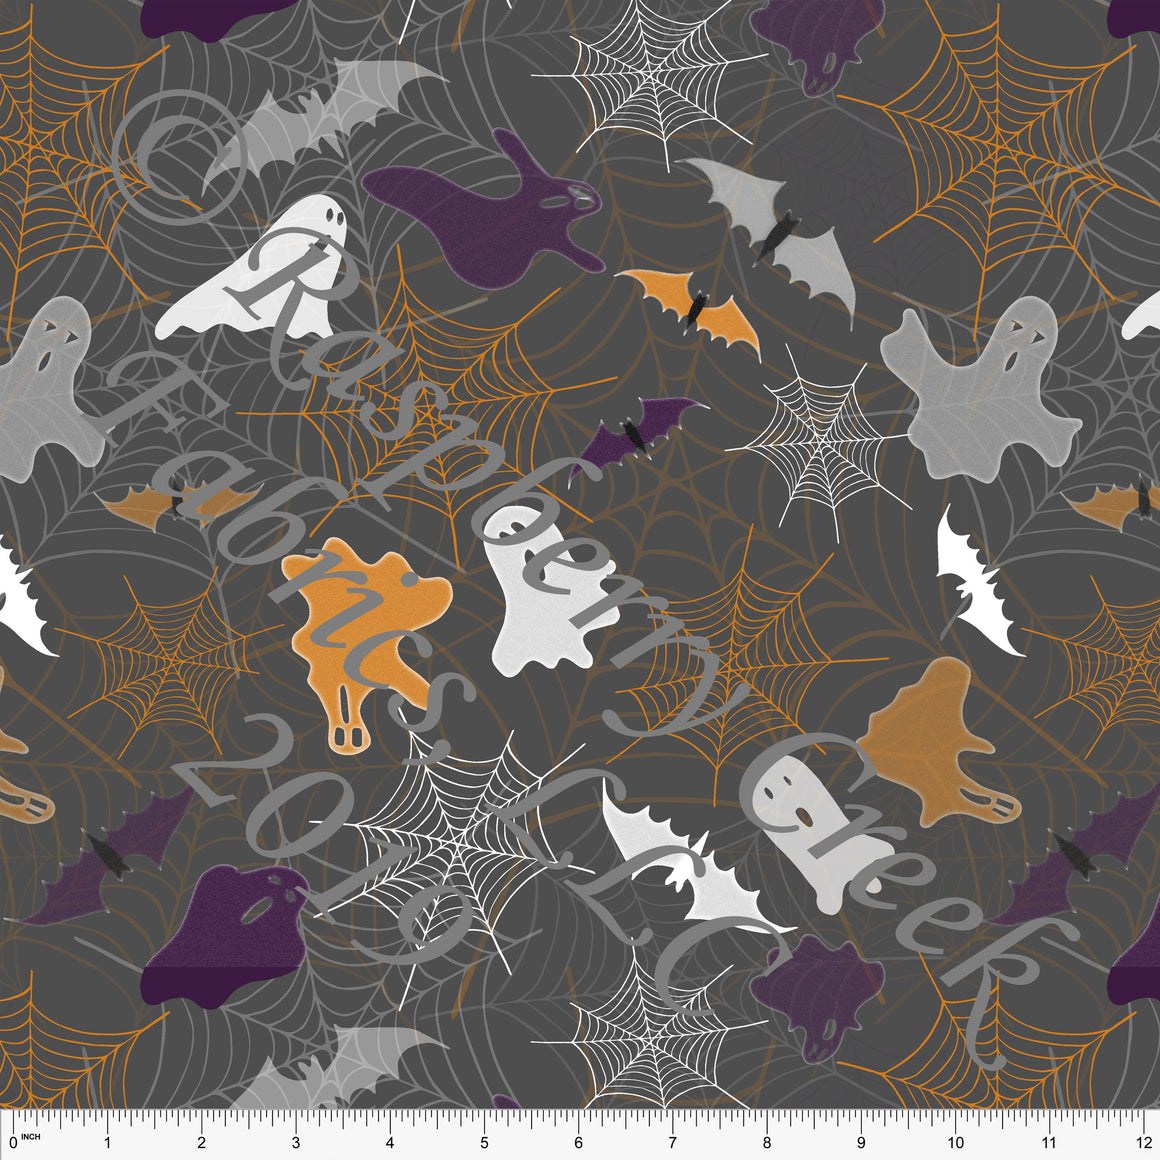 Charcoal Purple Orange White and Black Bats Spiderwebs and Ghosts 4 Way Stretch Double Brushed Poly Knit Fabric, By Elise Peterson for CLUB Fabrics - Raspberry Creek Fabrics